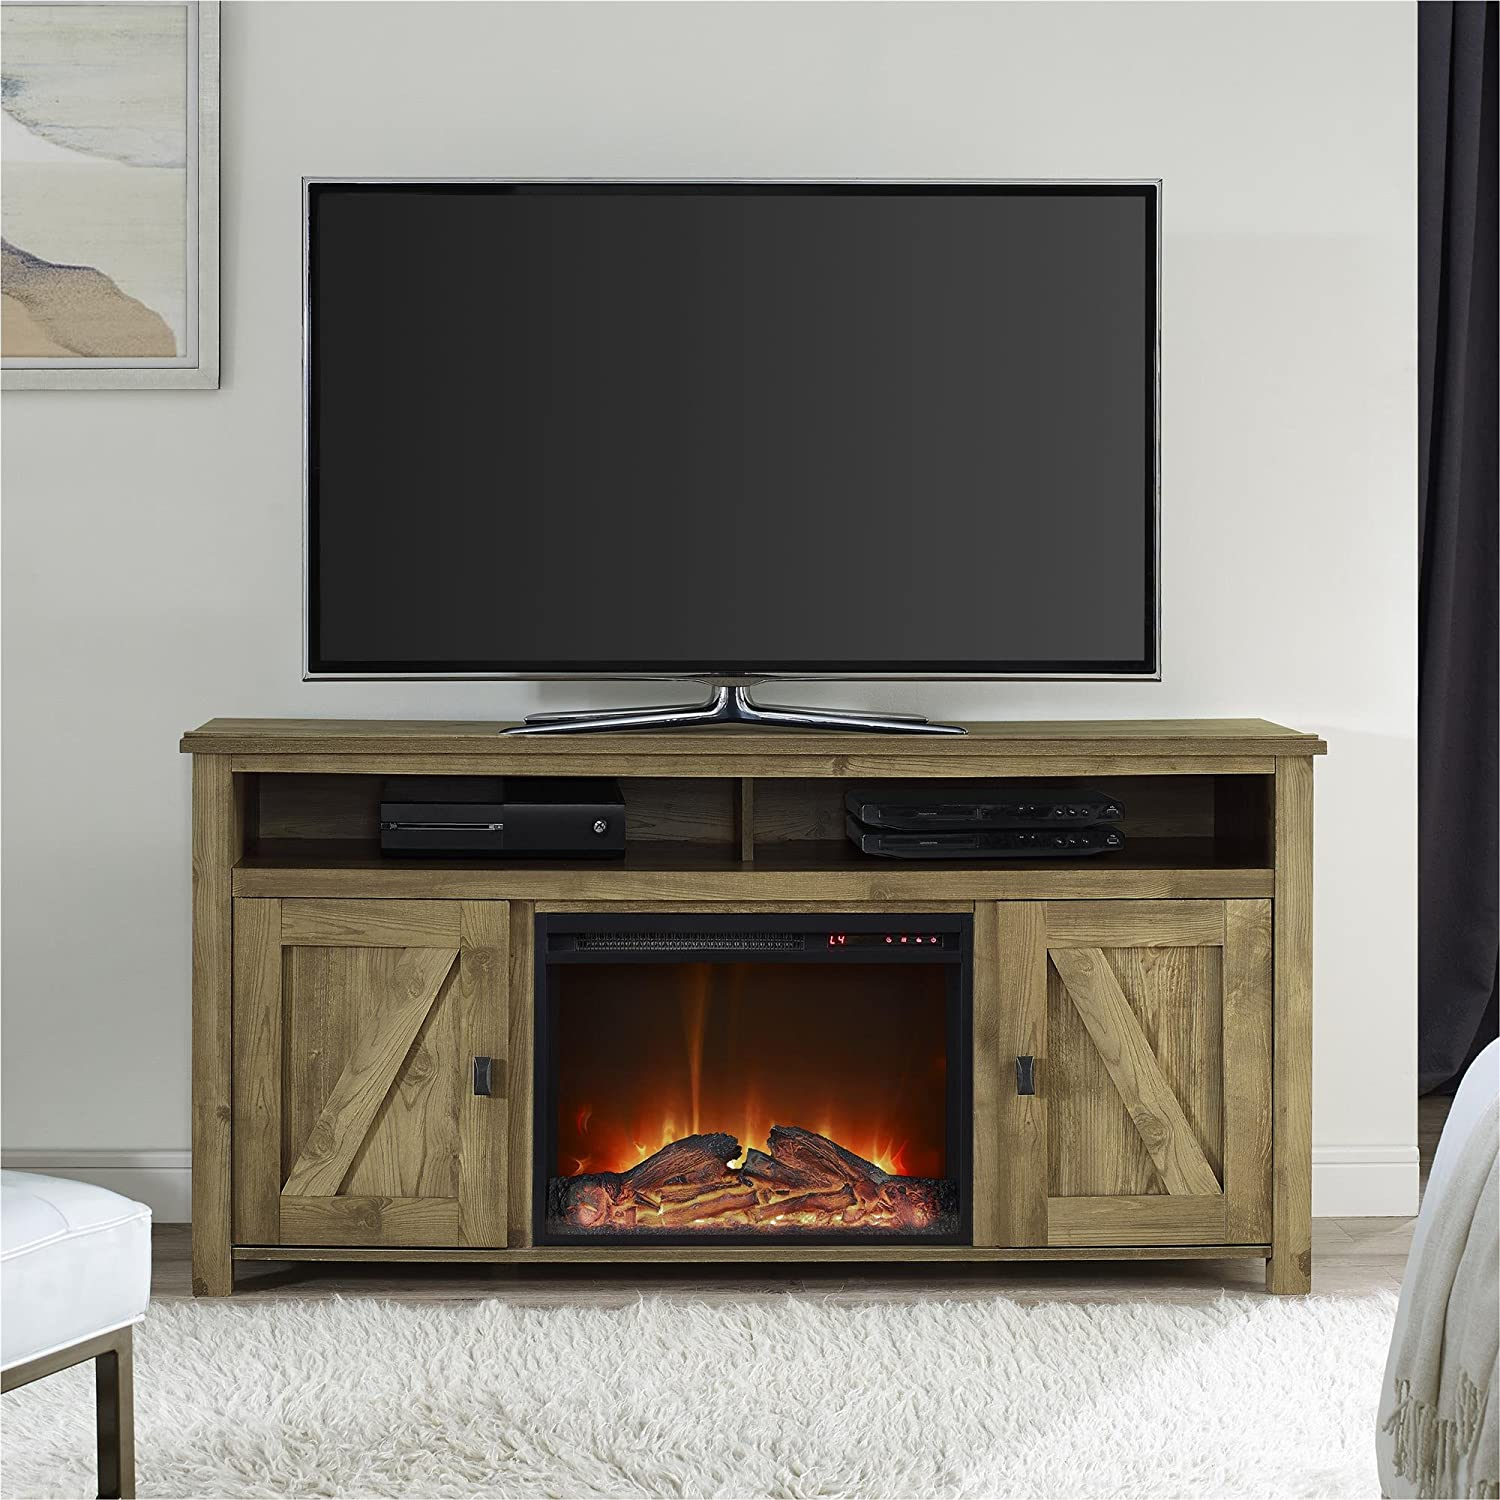 up shipping tv today overstock tvs stand fireplace ameriwood free carver for electric garden to home product altra inches